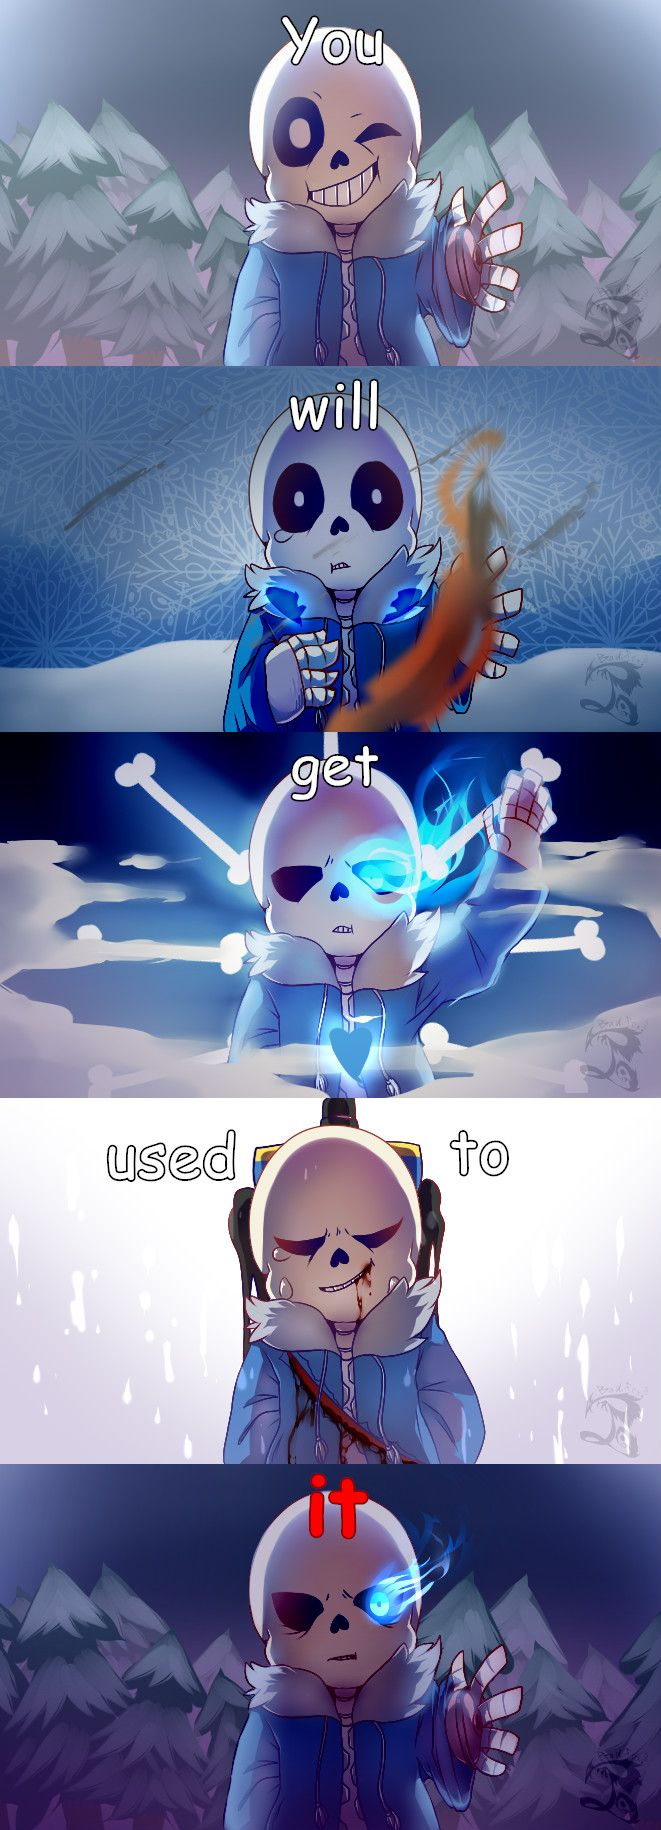 Sans - http://nxy-badfox.tumblr.com/post/132655867027/you-will-get-used-to-it